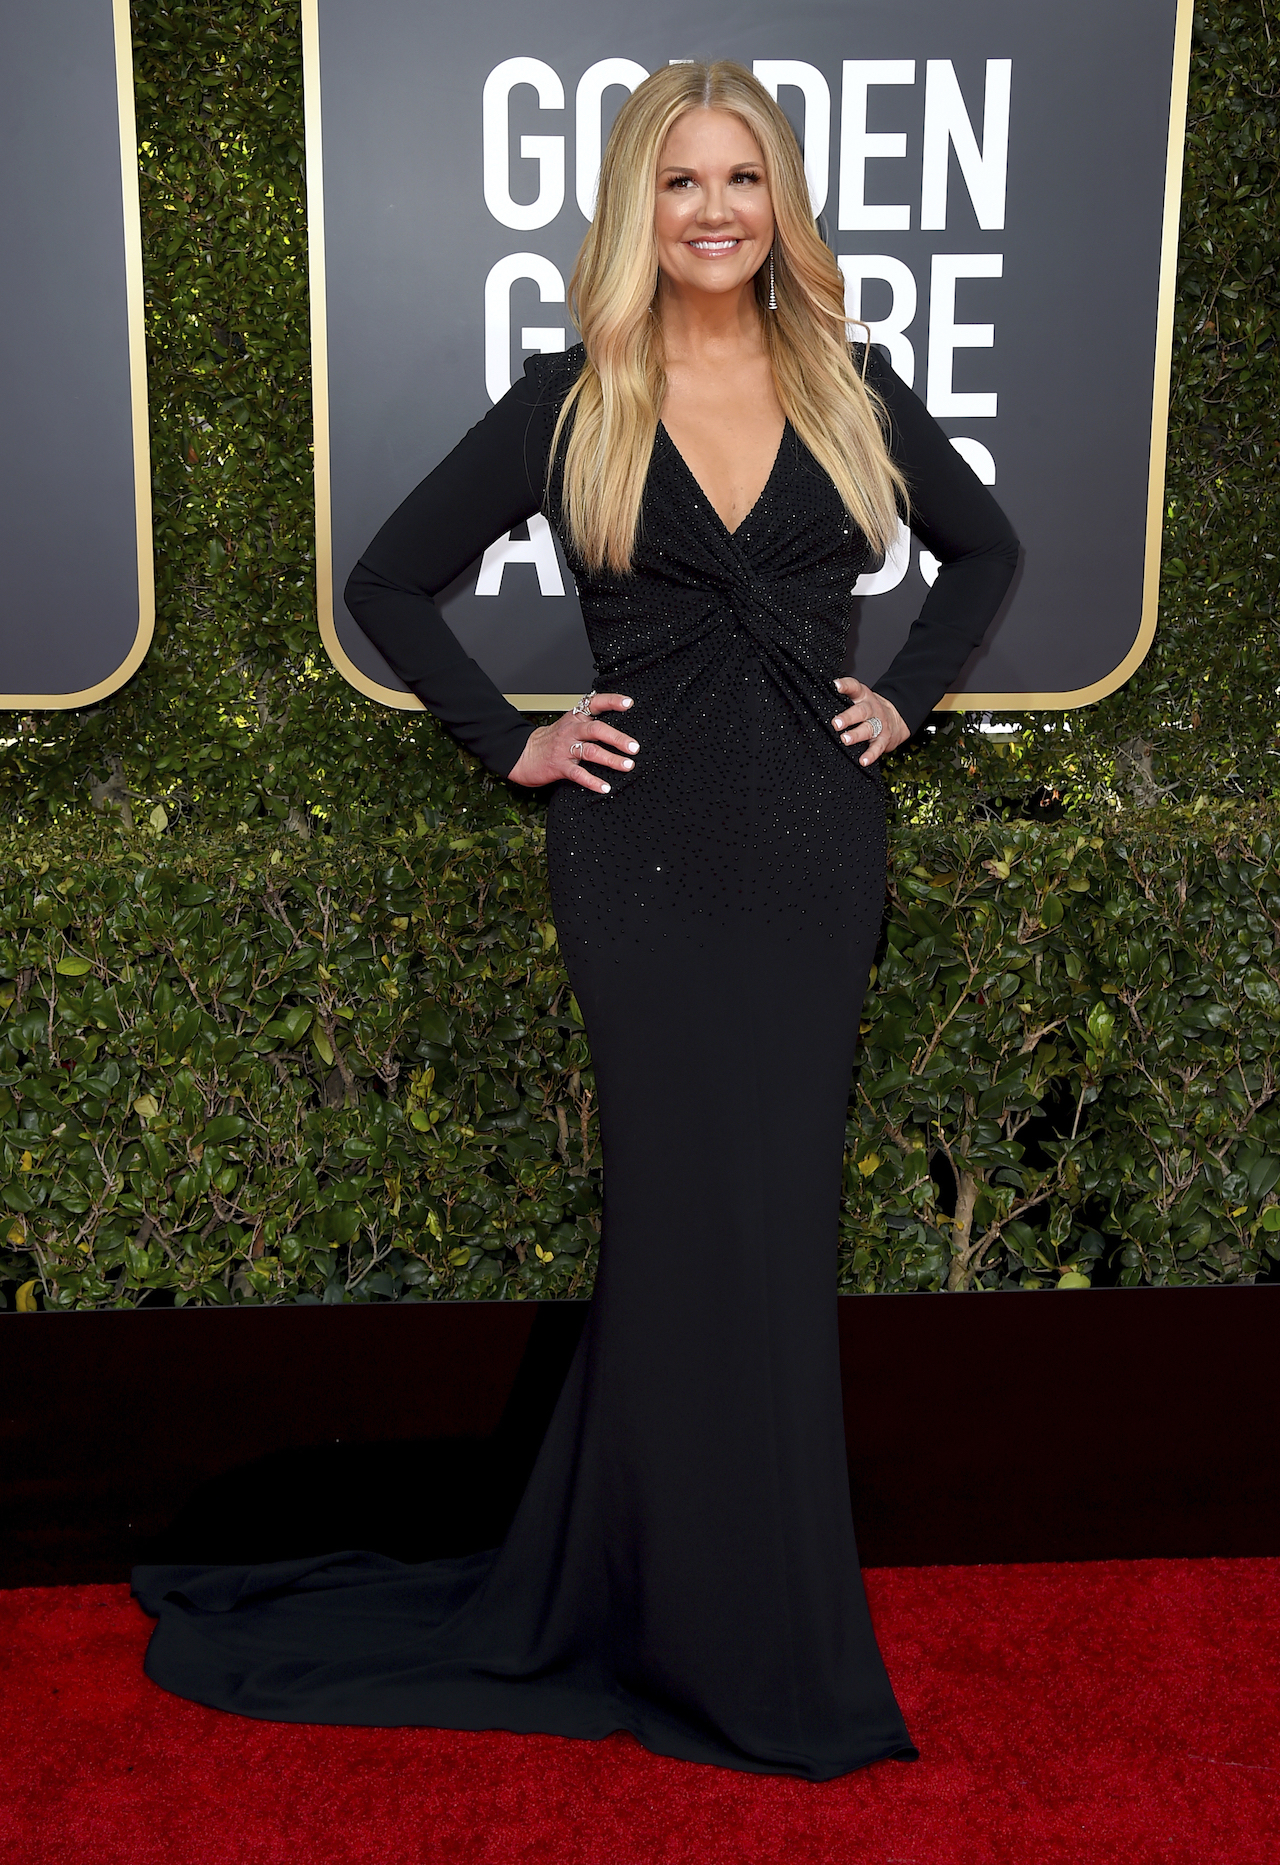 <div class='meta'><div class='origin-logo' data-origin='AP'></div><span class='caption-text' data-credit='Invision'>Nancy O'Dell arrives at the 76th annual Golden Globe Awards at the Beverly Hilton Hotel on Sunday, Jan. 6, 2019, in Beverly Hills, Calif.</span></div>